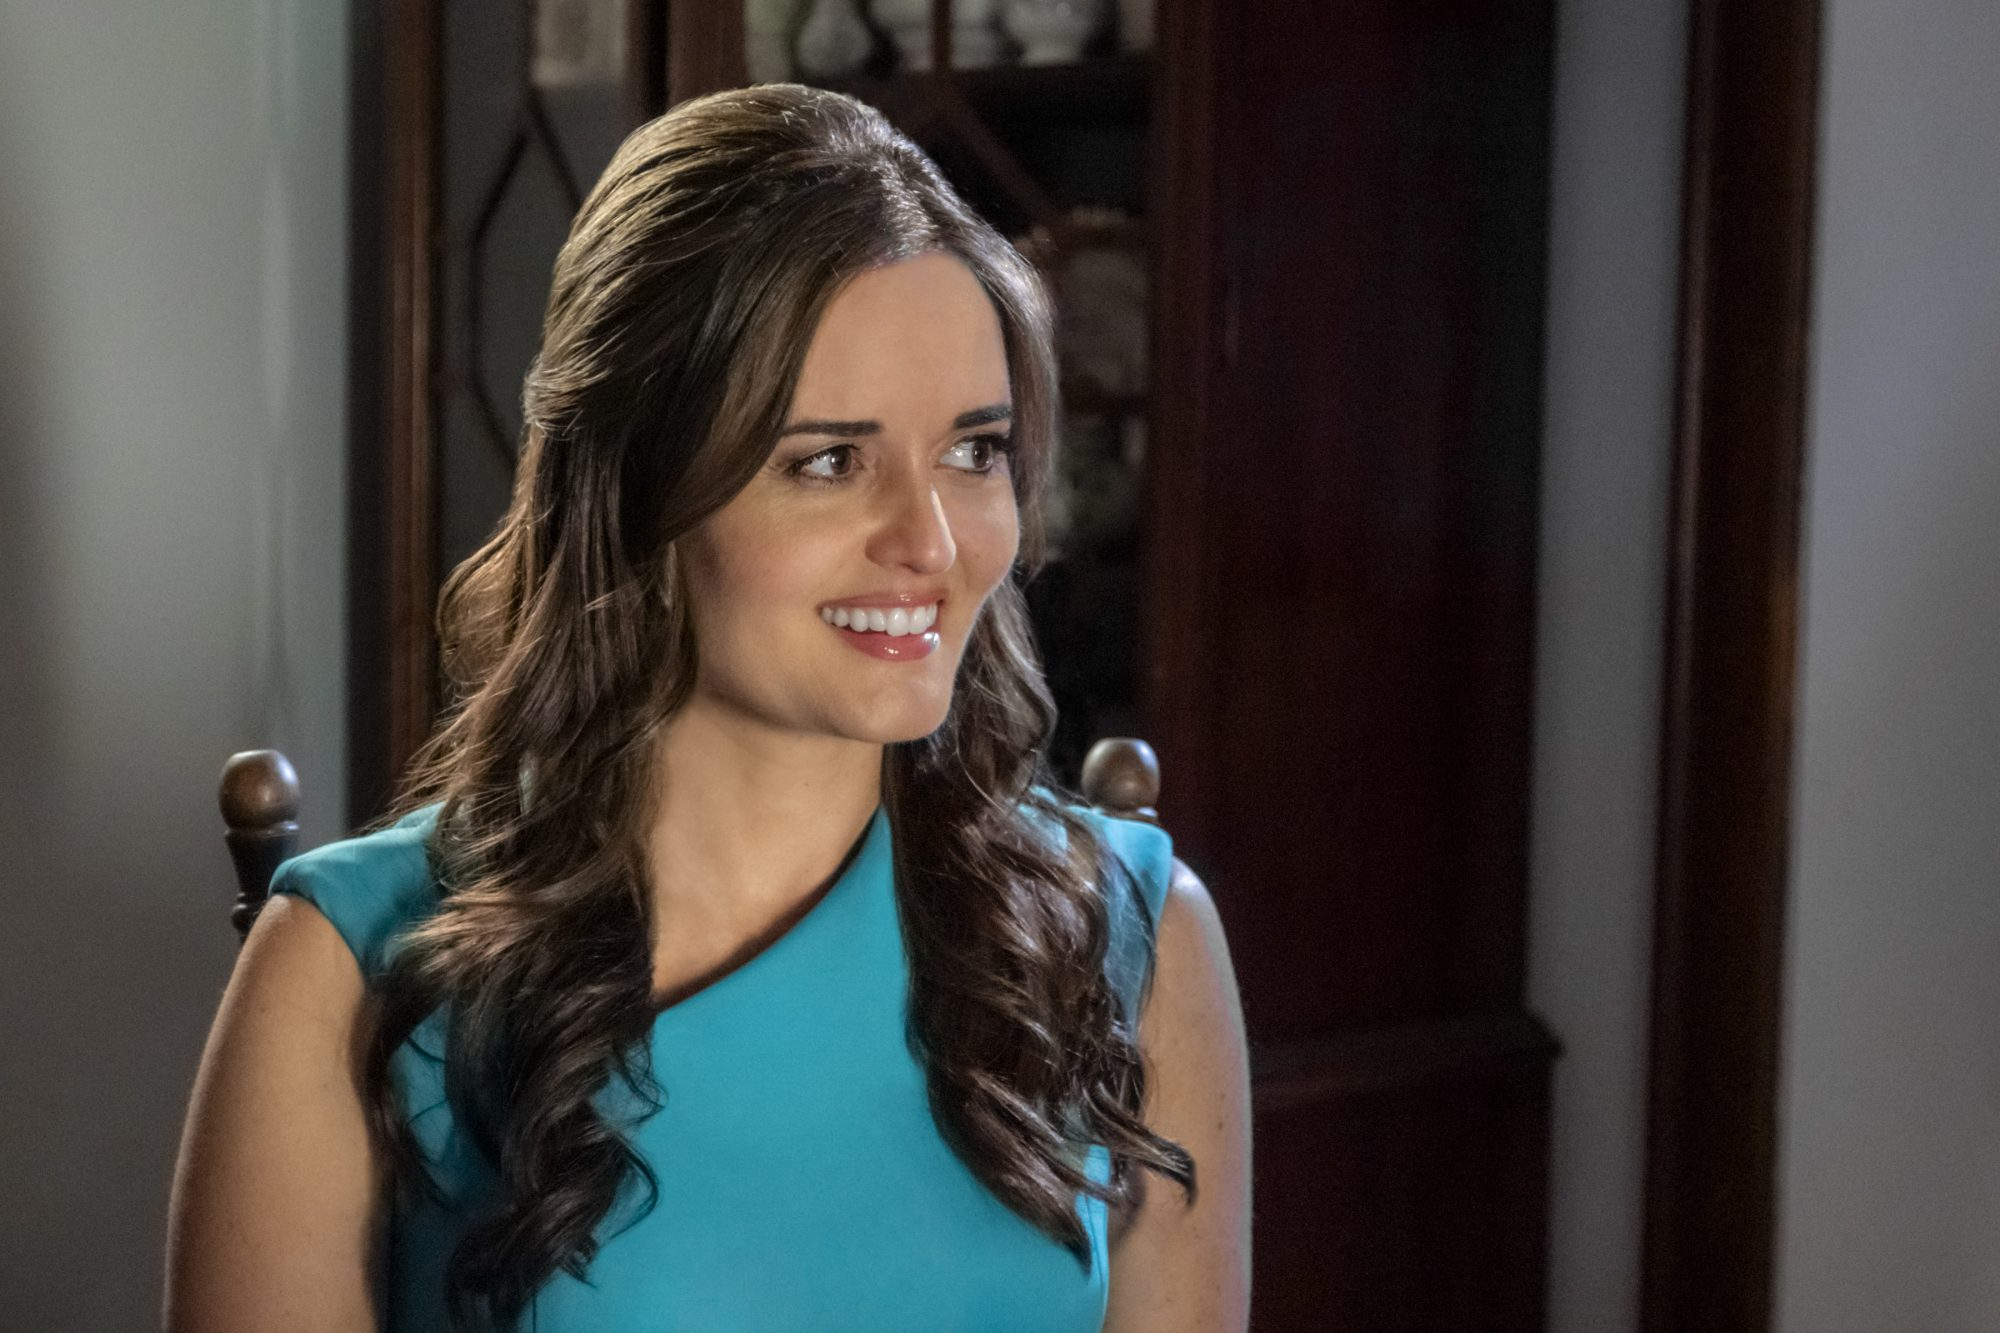 Exclusive: Get the First Look at the Newest Hallmark Mystery Series Starring Danica McKellar